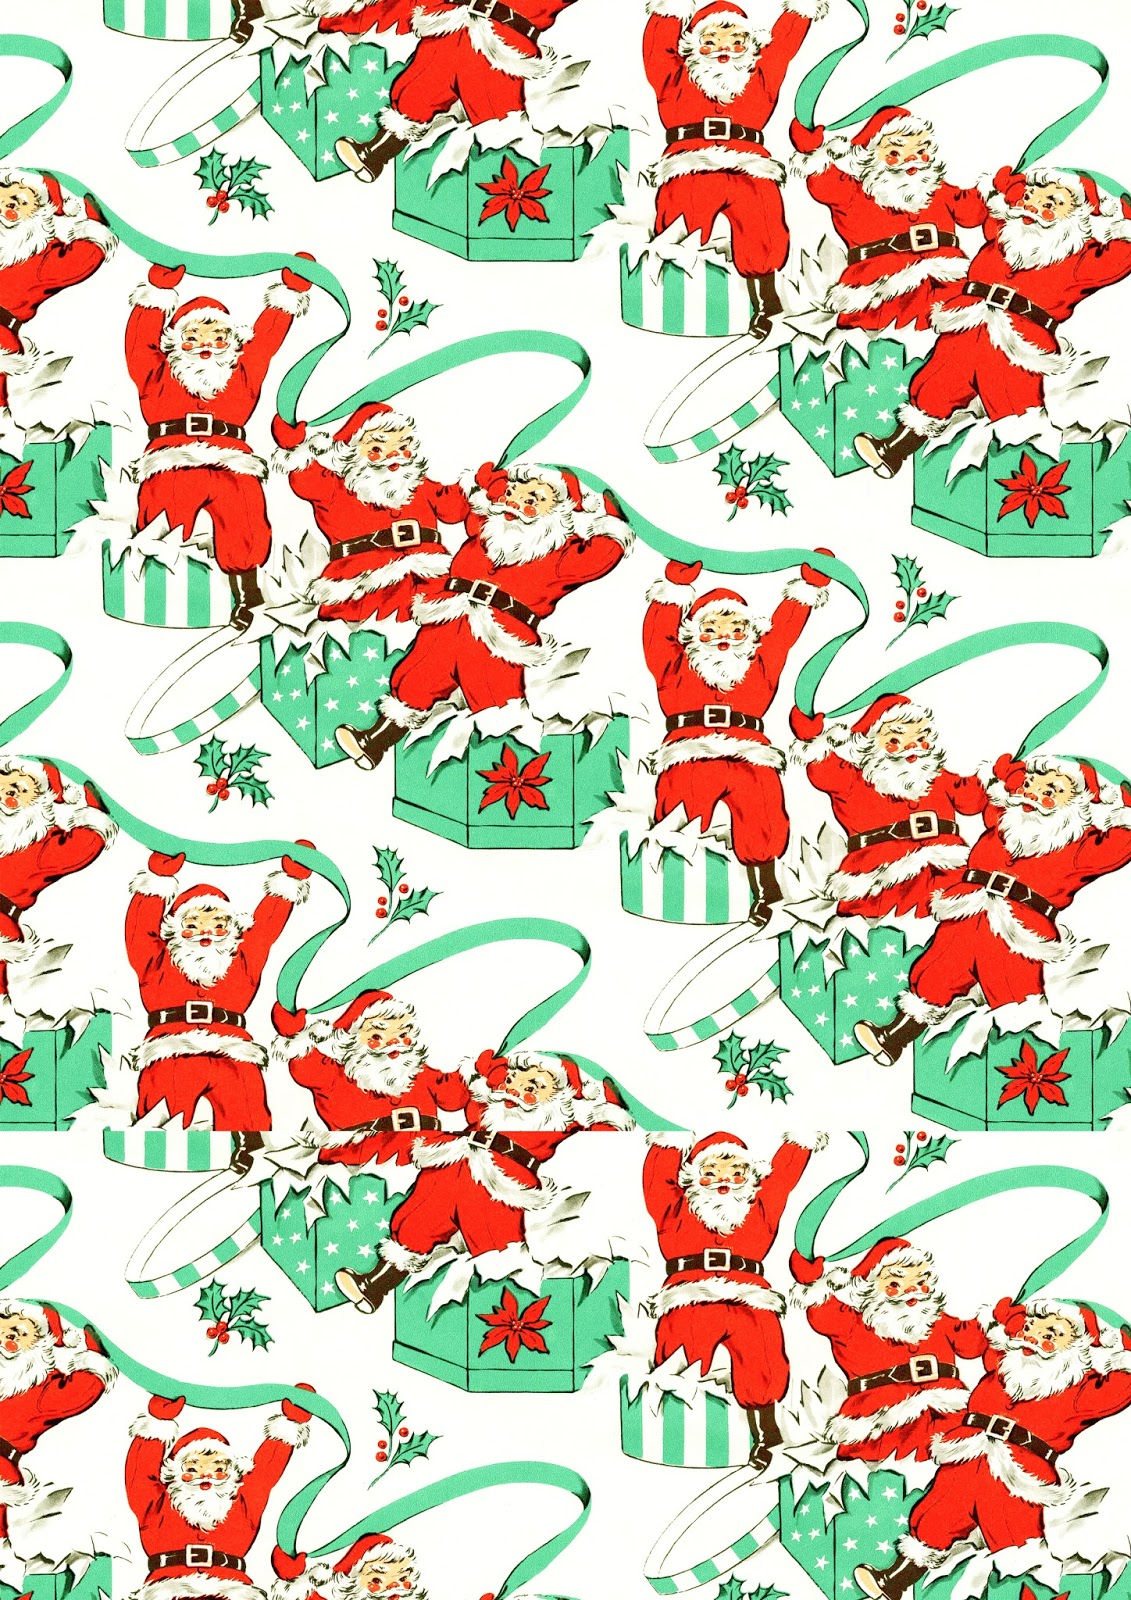 This is an image of Simplicity Christmas Printable Paper